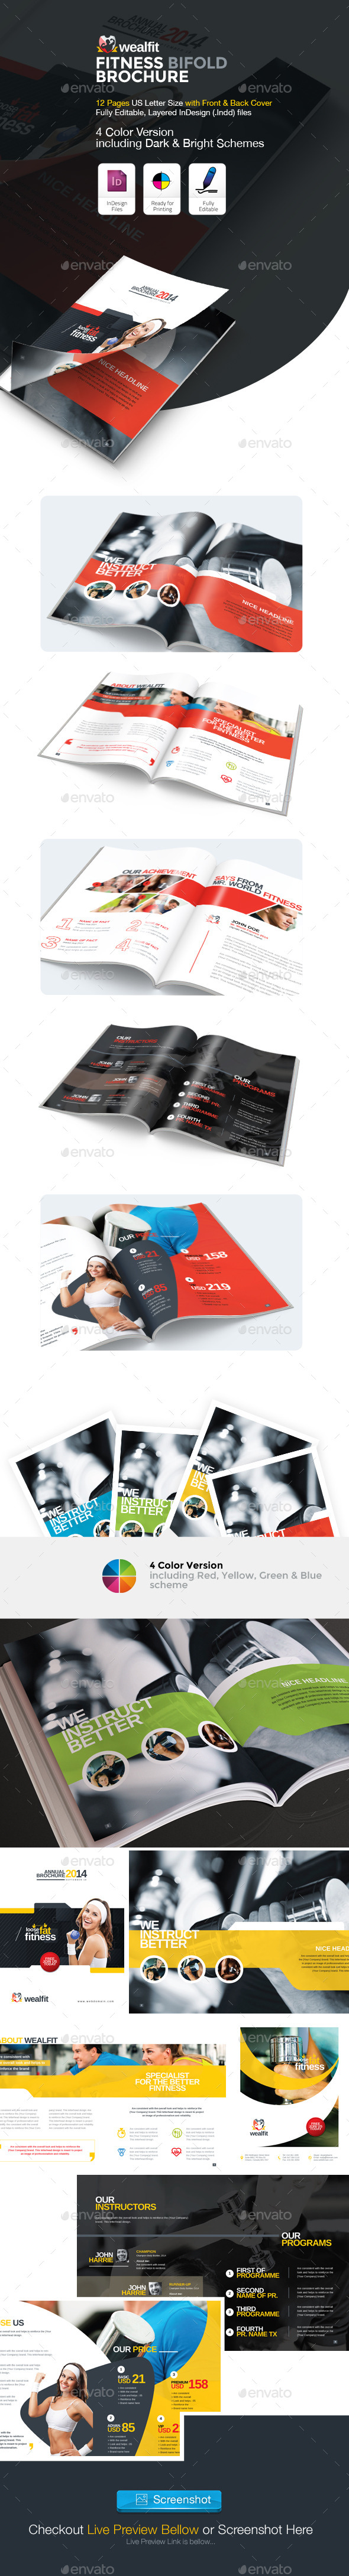 GraphicRiver WealFit Fitness Gym Bifold Brochure 10046659